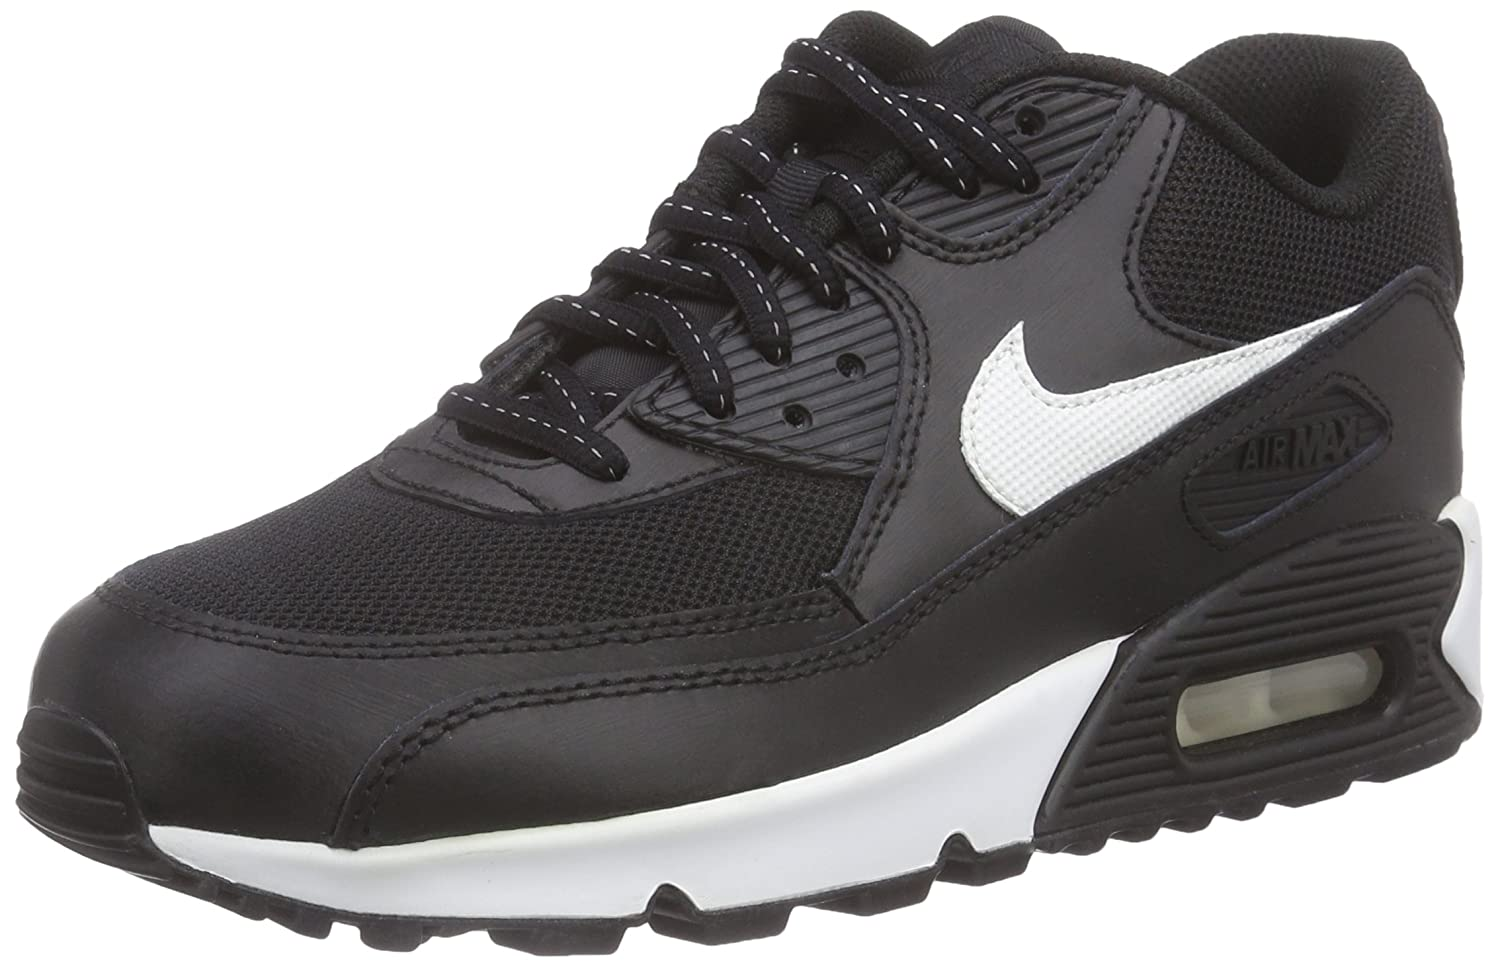 newest 4d108 34f76 Nike Air Max 90 Flash (Gs), Boys  Trainers, Black - Schwarz (001 BLACK SUMMIT  WHITE), 4 UK  Amazon.co.uk  Shoes   Bags